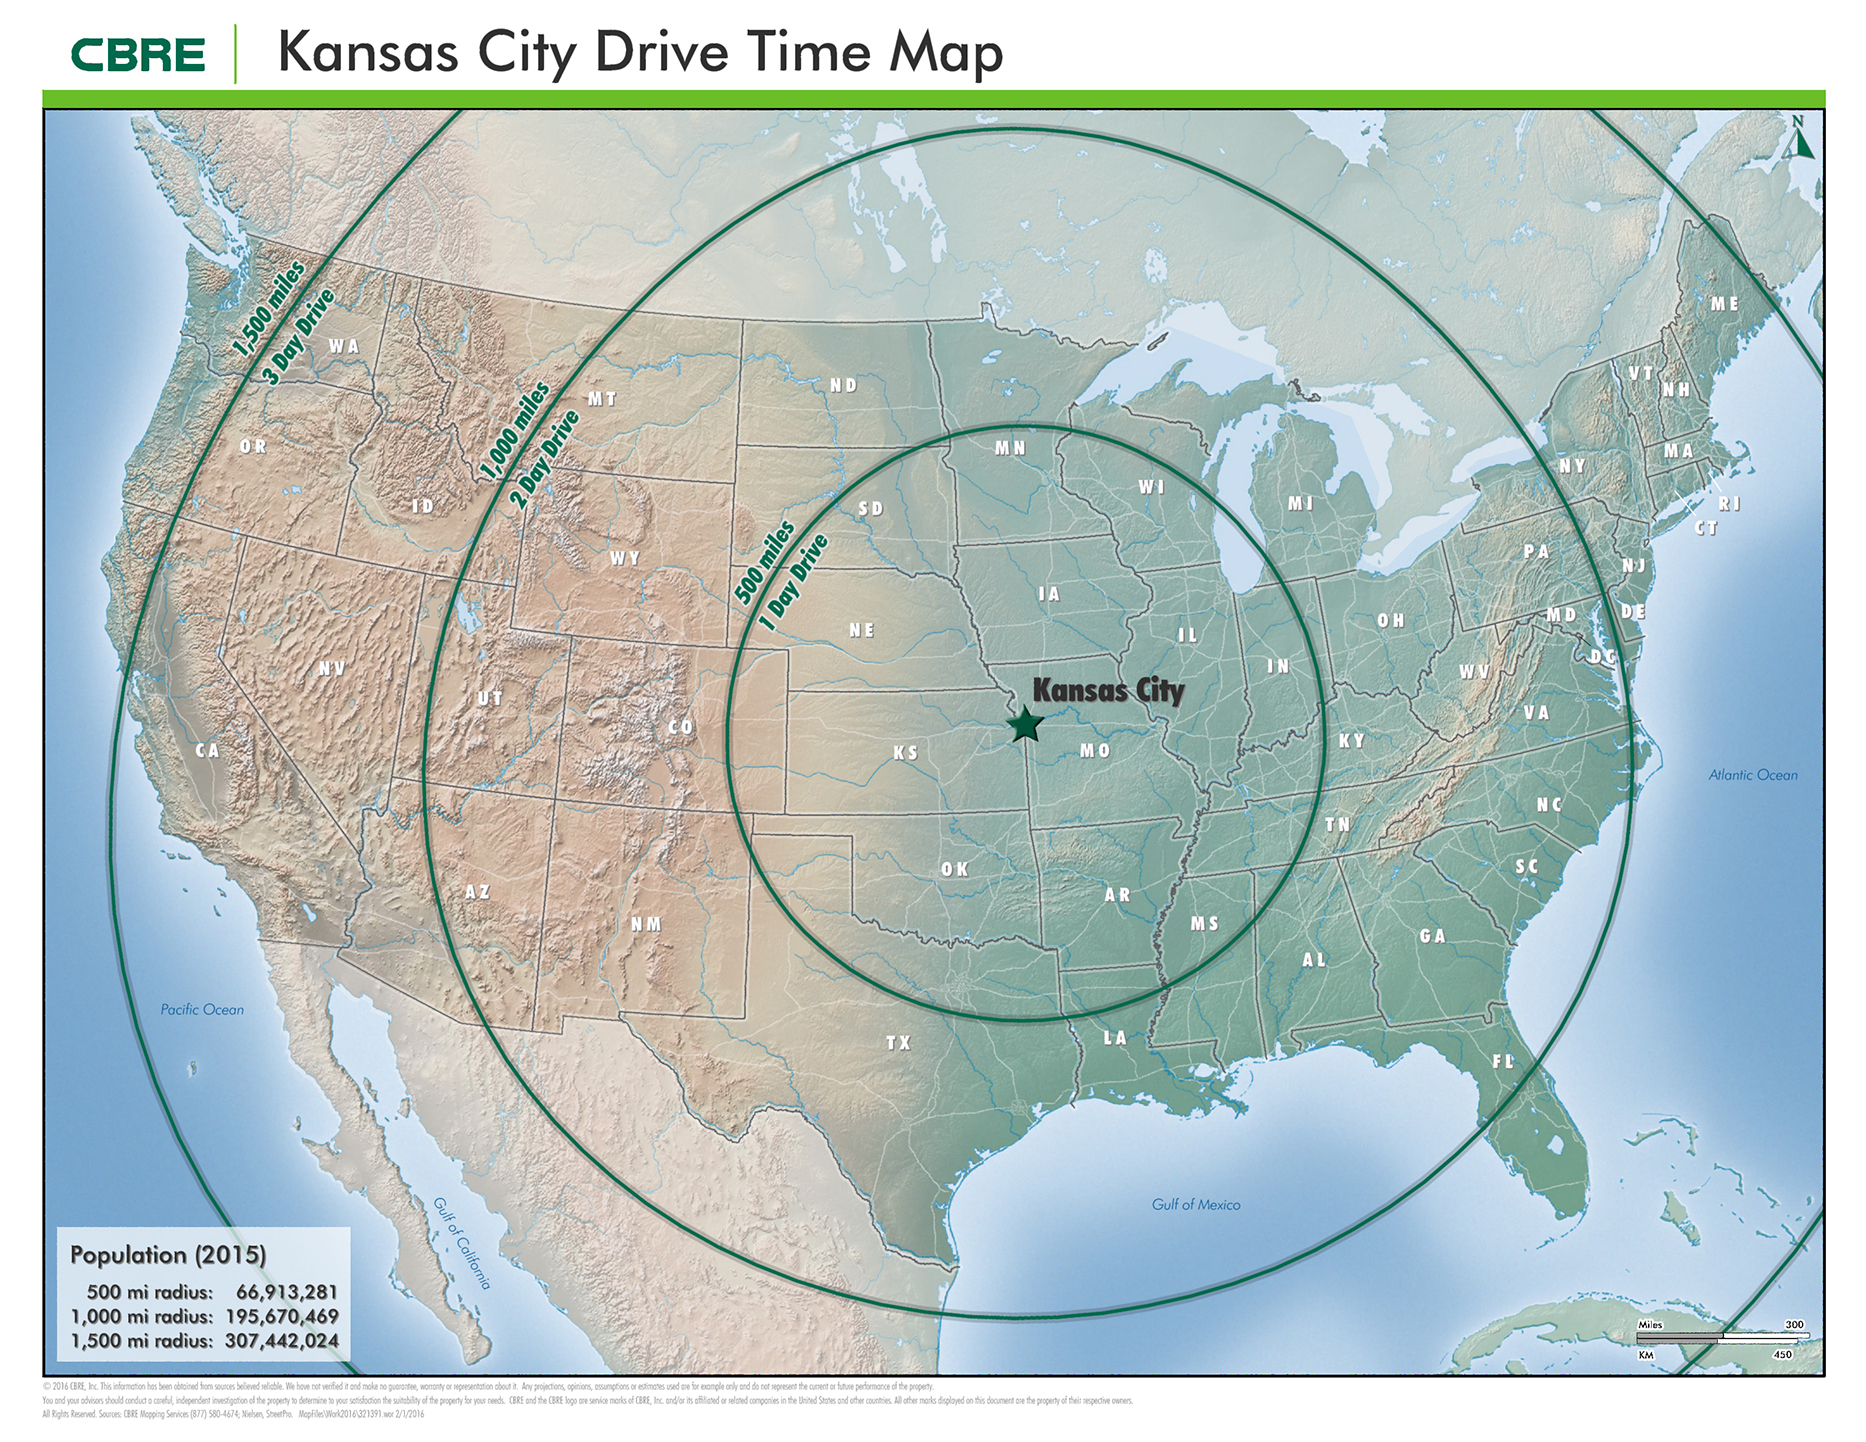 Maps & Site Plans | KCI Intermodal Business Centre Drive Time Maps on